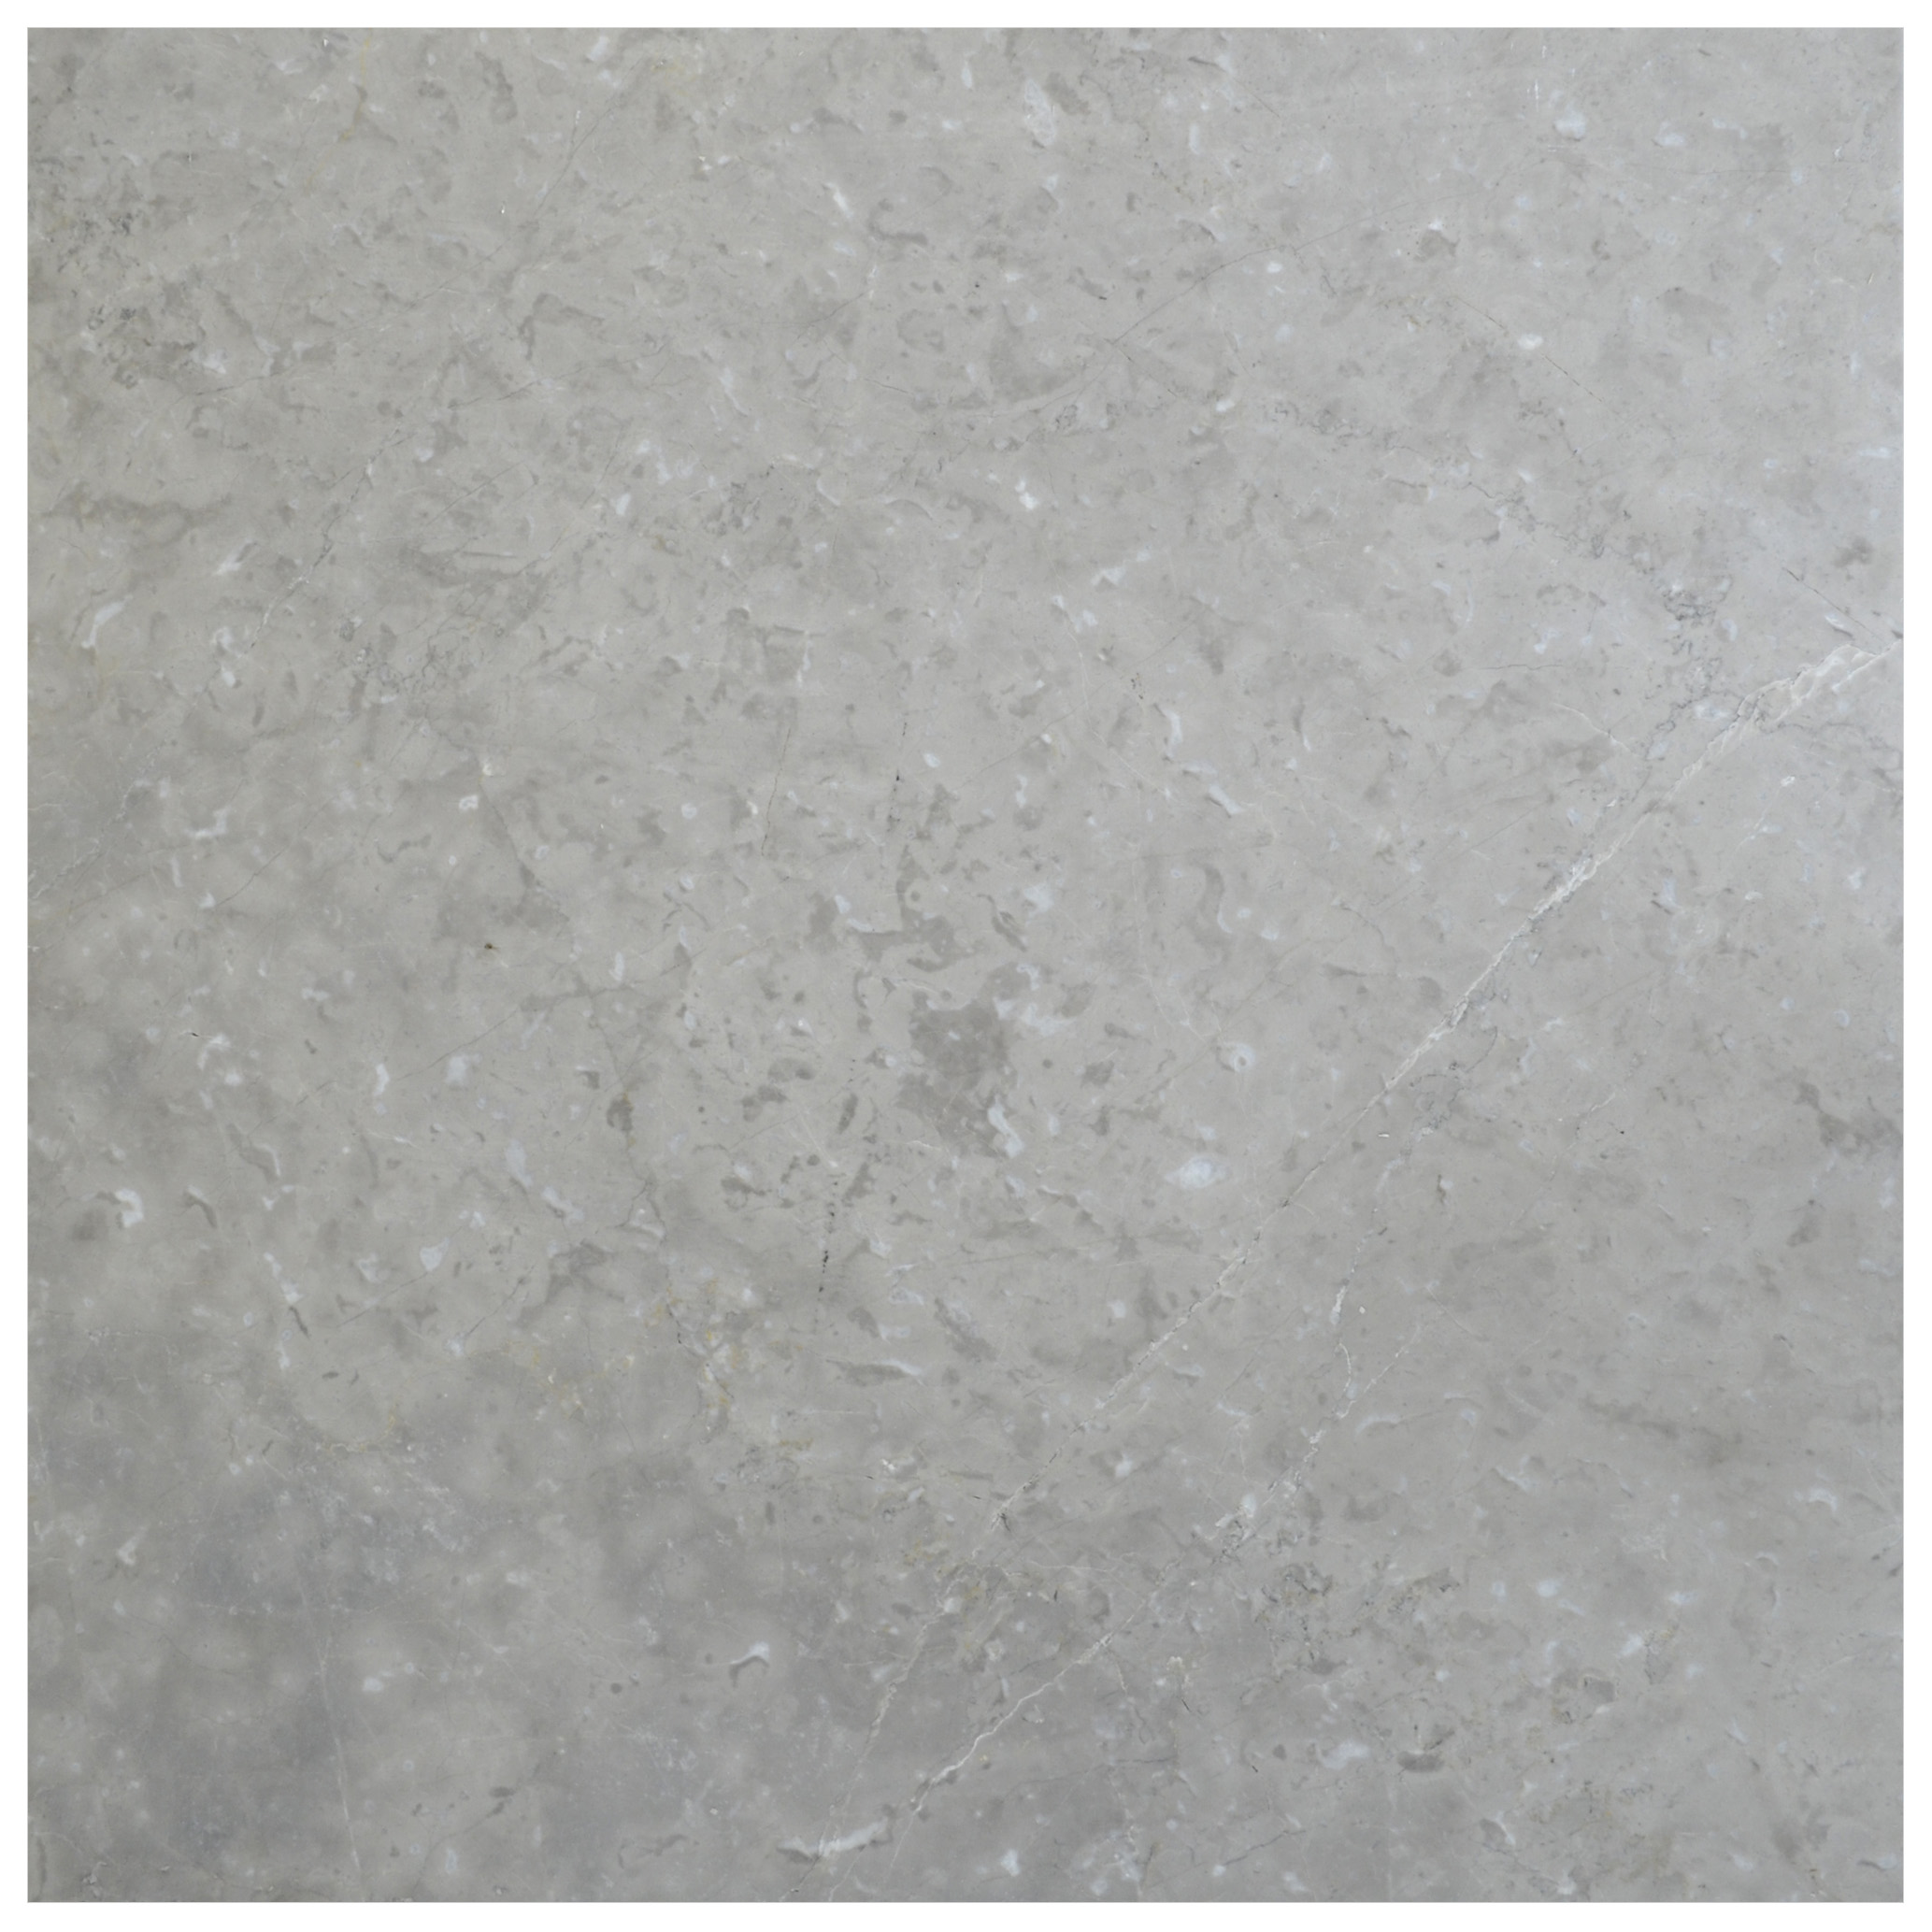 Silver Belinda Polished Marble Tiles 35x35-marble sale-Atlantic Stone Source